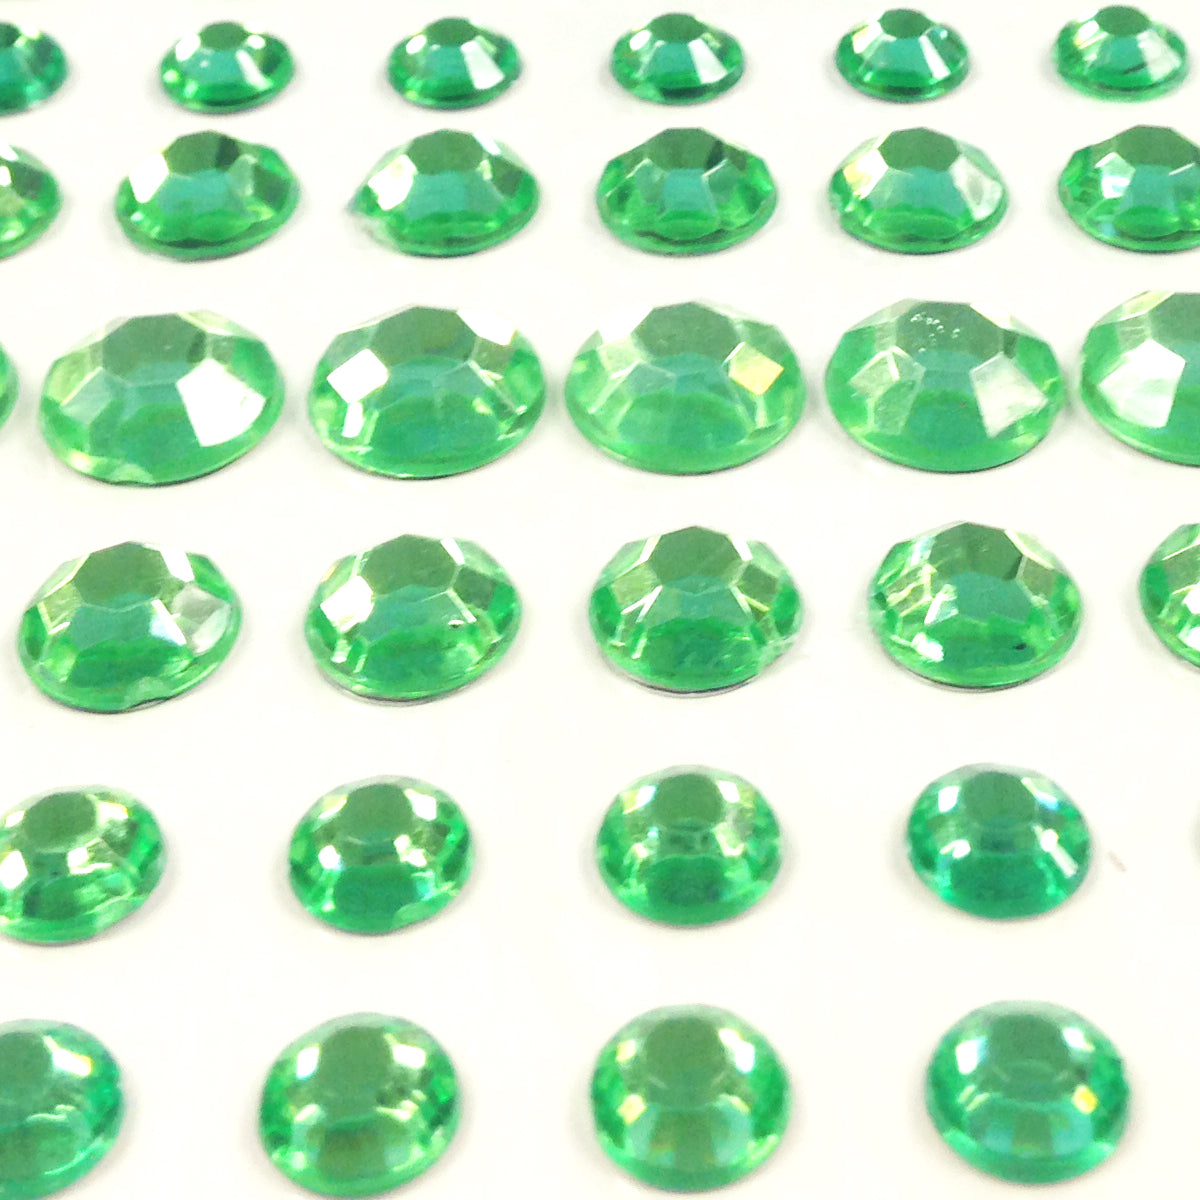 Wrapables 91 Pieces Crystal Diamond Sticker Adhesive Rhinestones 4/6/8/12mm